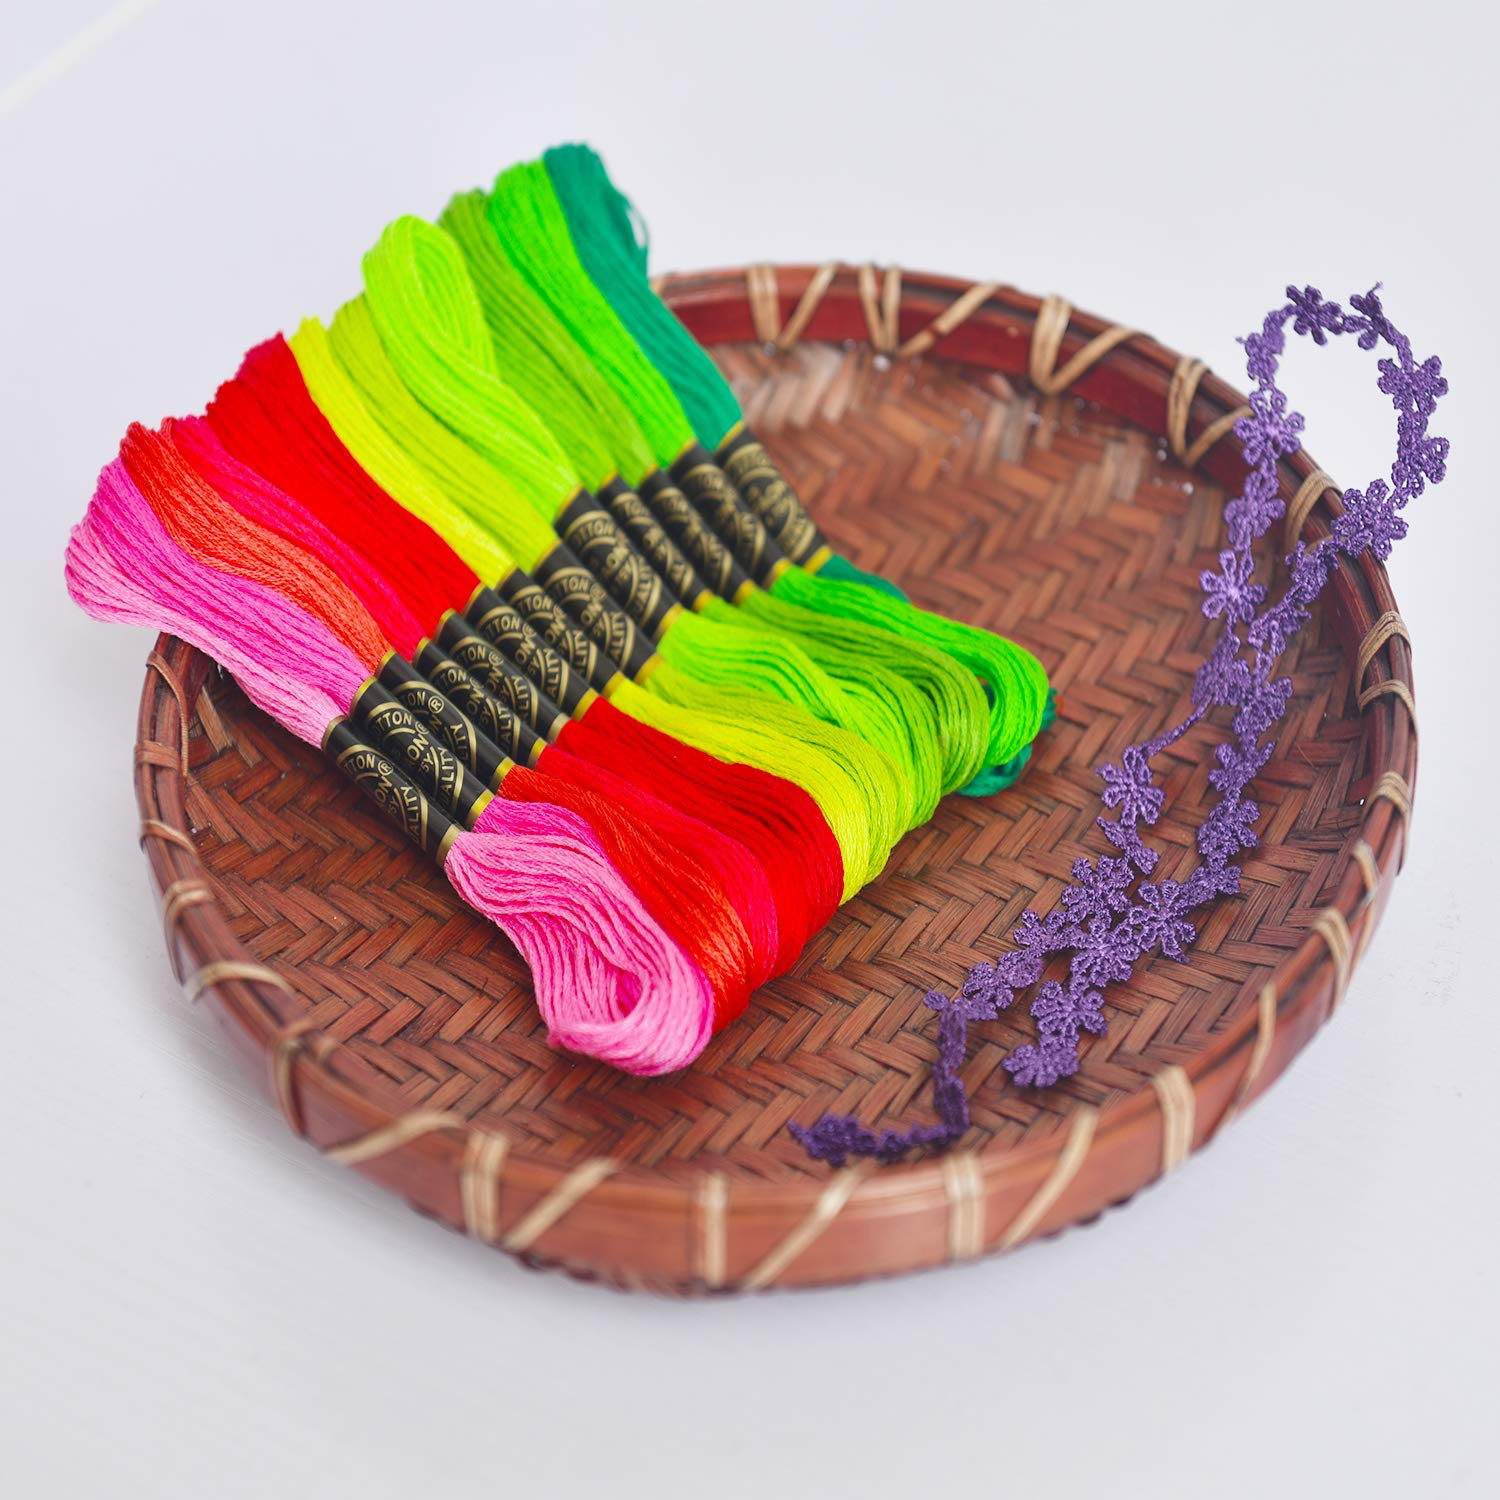 Embroidery Floss Rainbow Color 2 Pack 50 Skeins Per Pack Cross Stitch Threads Friendship Bracelets Floss Crafts Floss